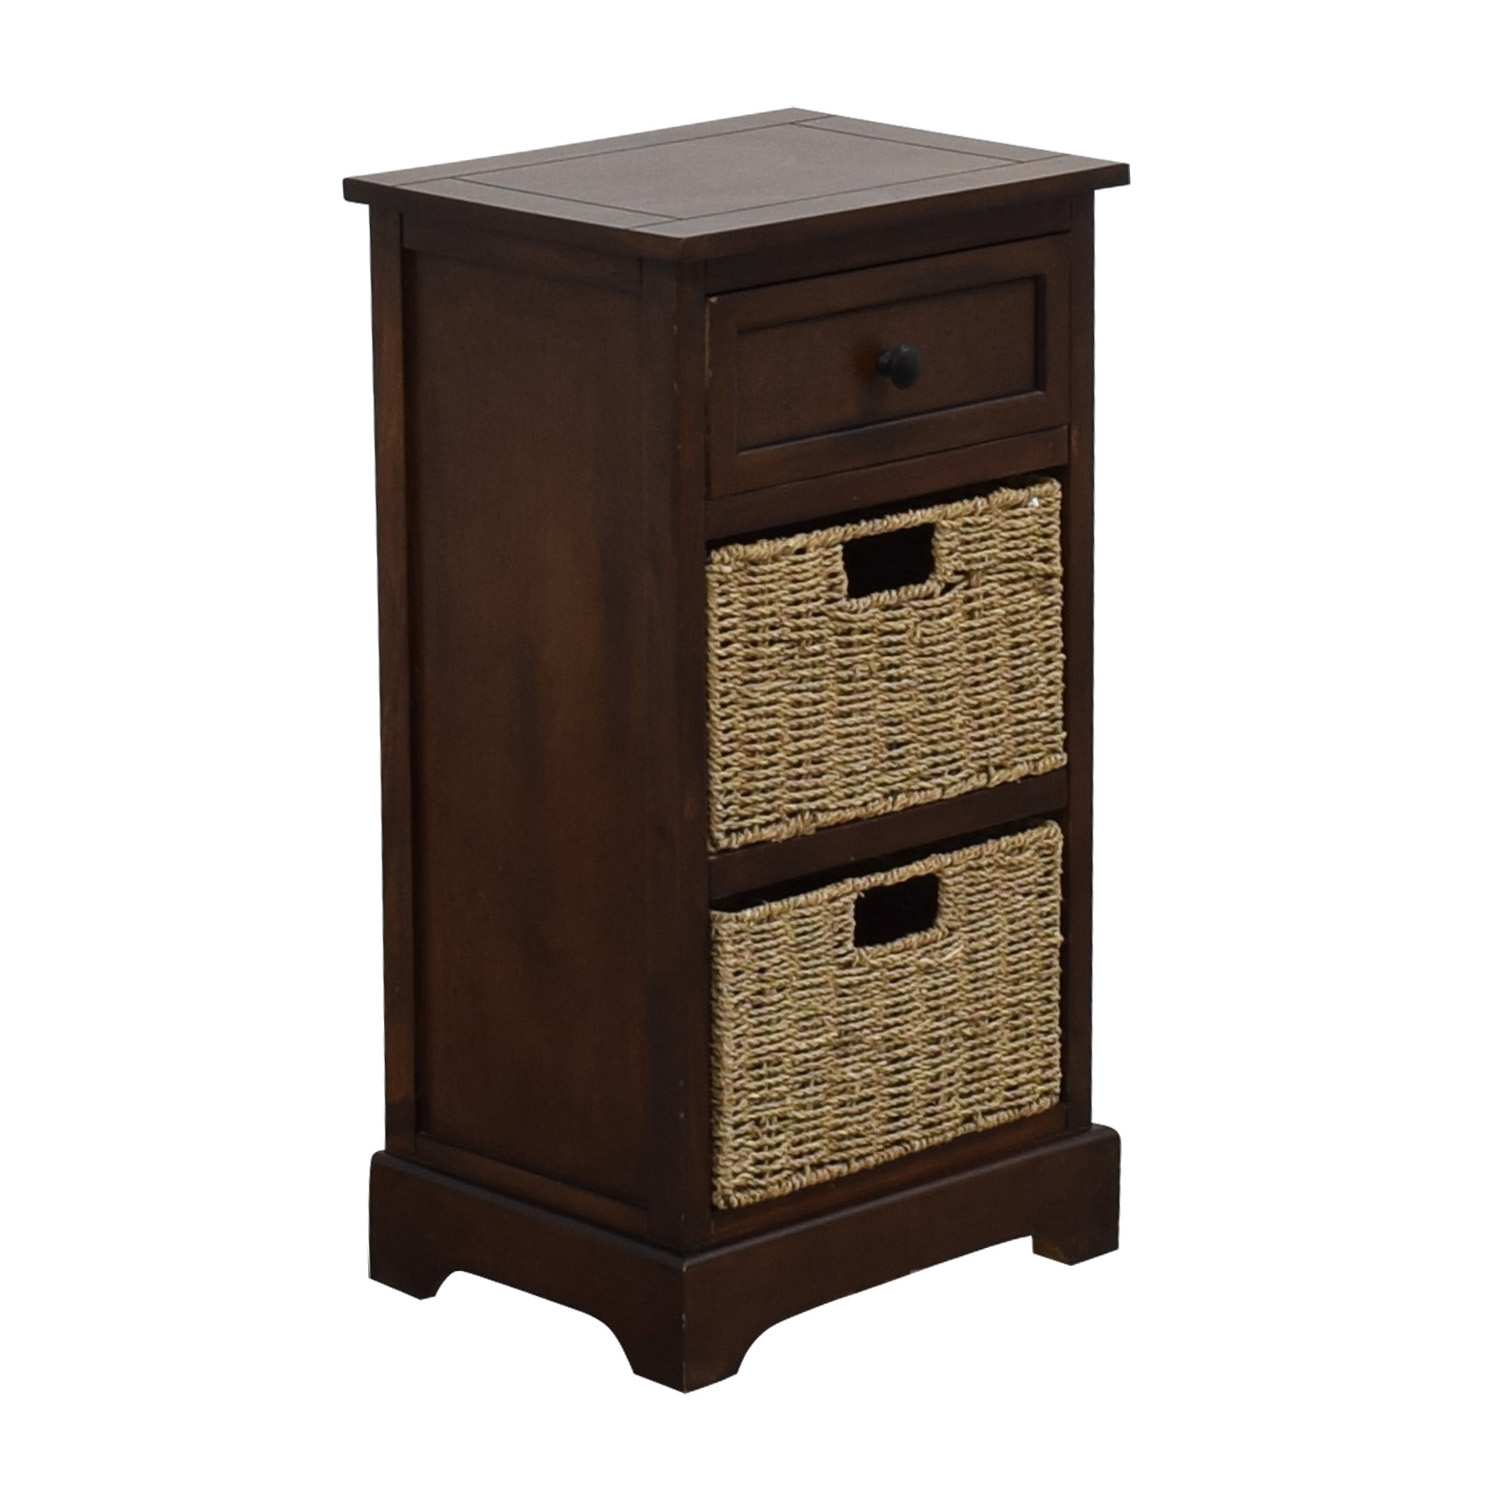 90 Off Wood Side Table With Two Wicker Baskets Tables